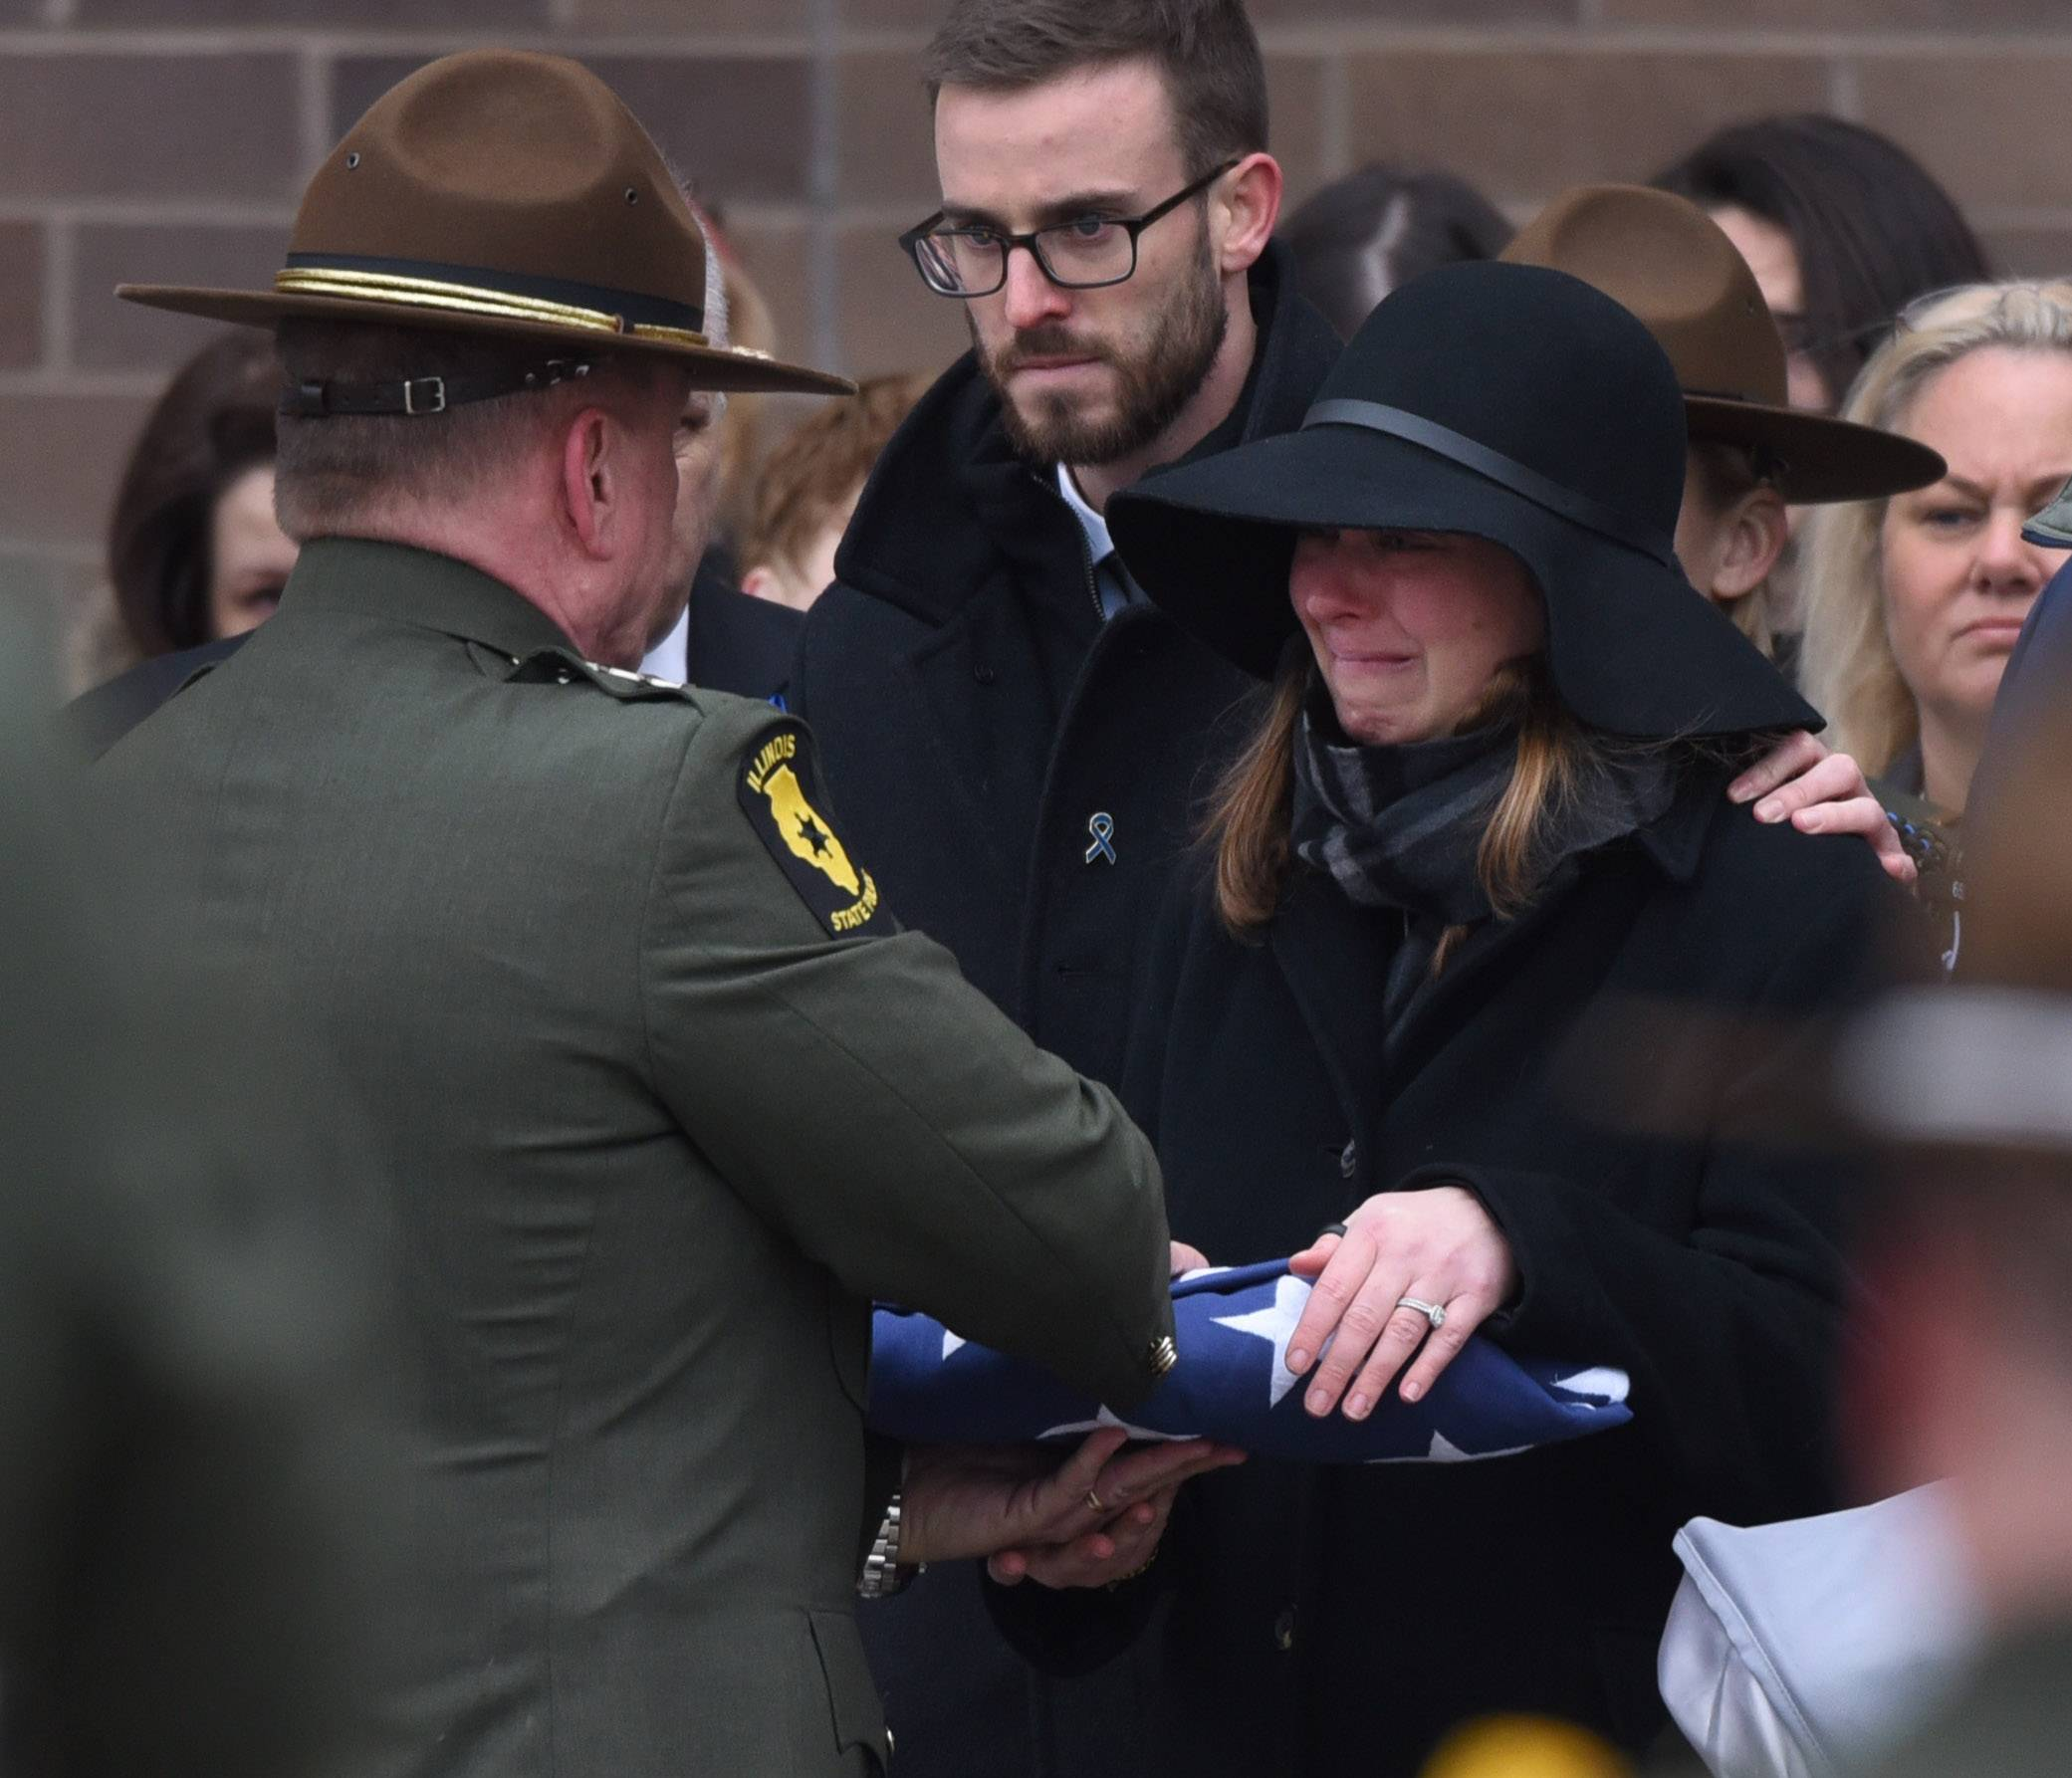 Illinois State Police Director Leo P. Schmitz hands the folded U.S. Flag to Halley Lambert during the funeral for her husband, Illinois State Police Trooper Christopher Lambert, at Willow Creek Community Church in South Barrington Friday.